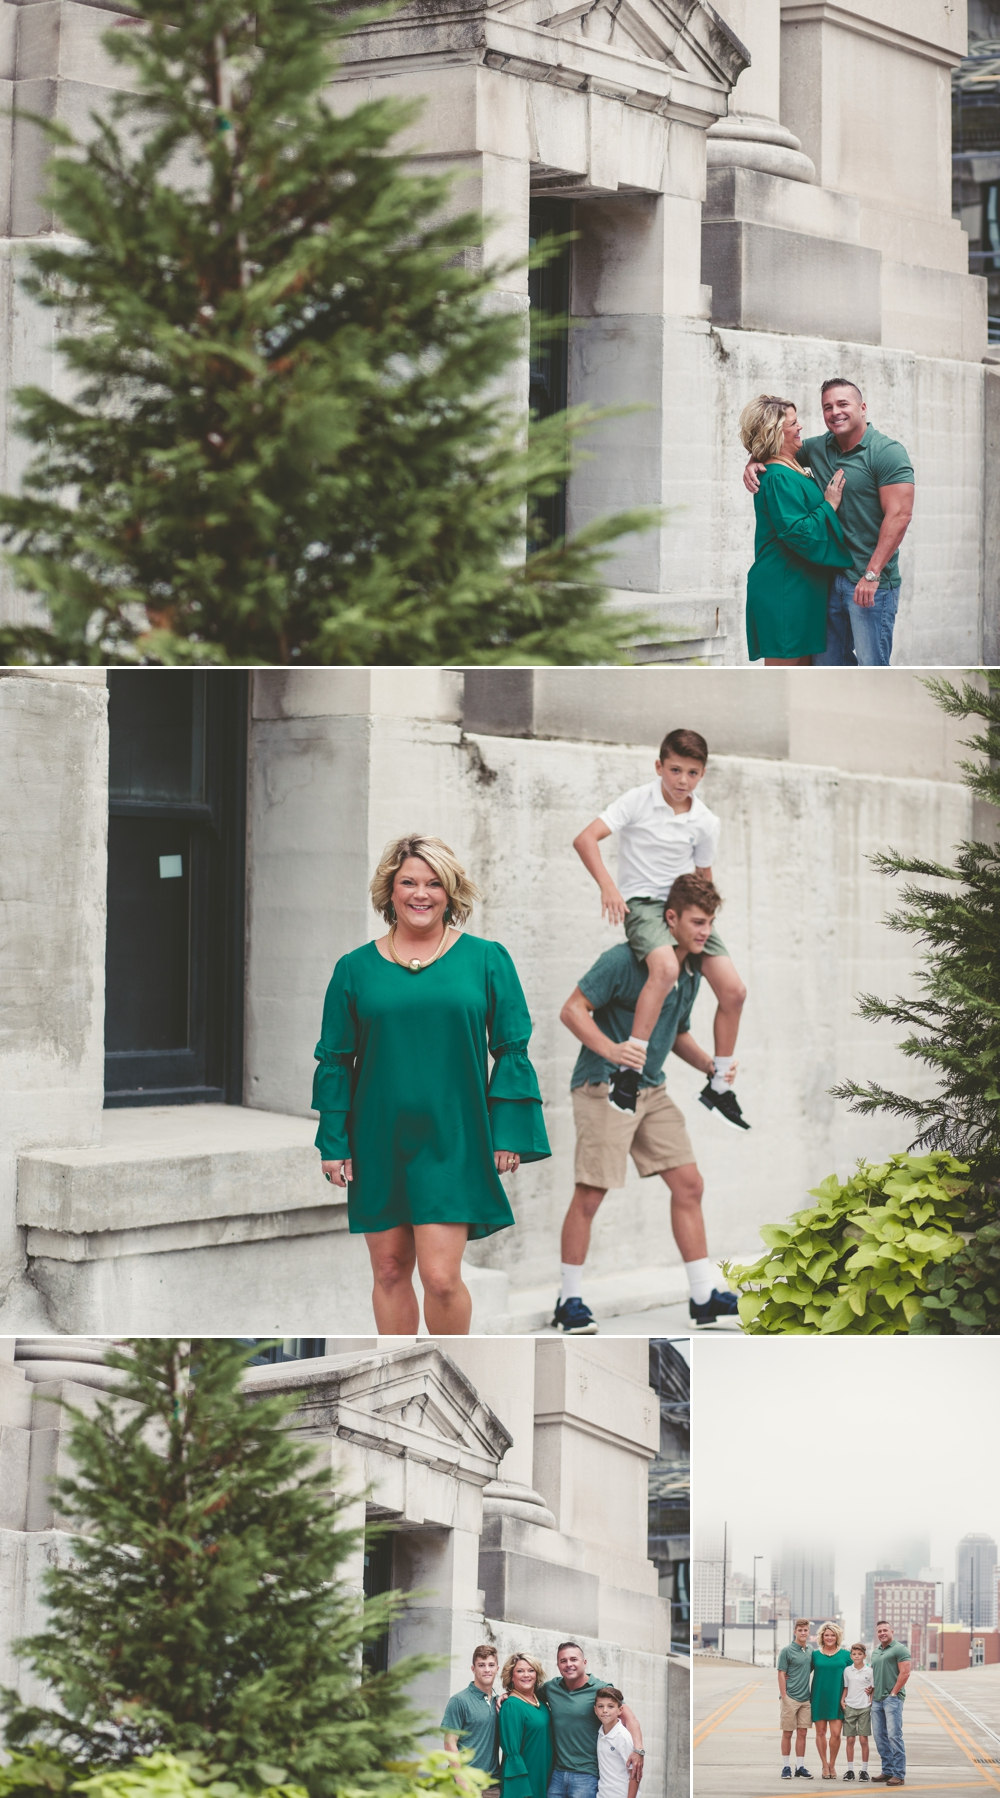 jason_domingues_photography_kansas_city_photographer_family_mini_sessions_union_station_kc_0002.JPG